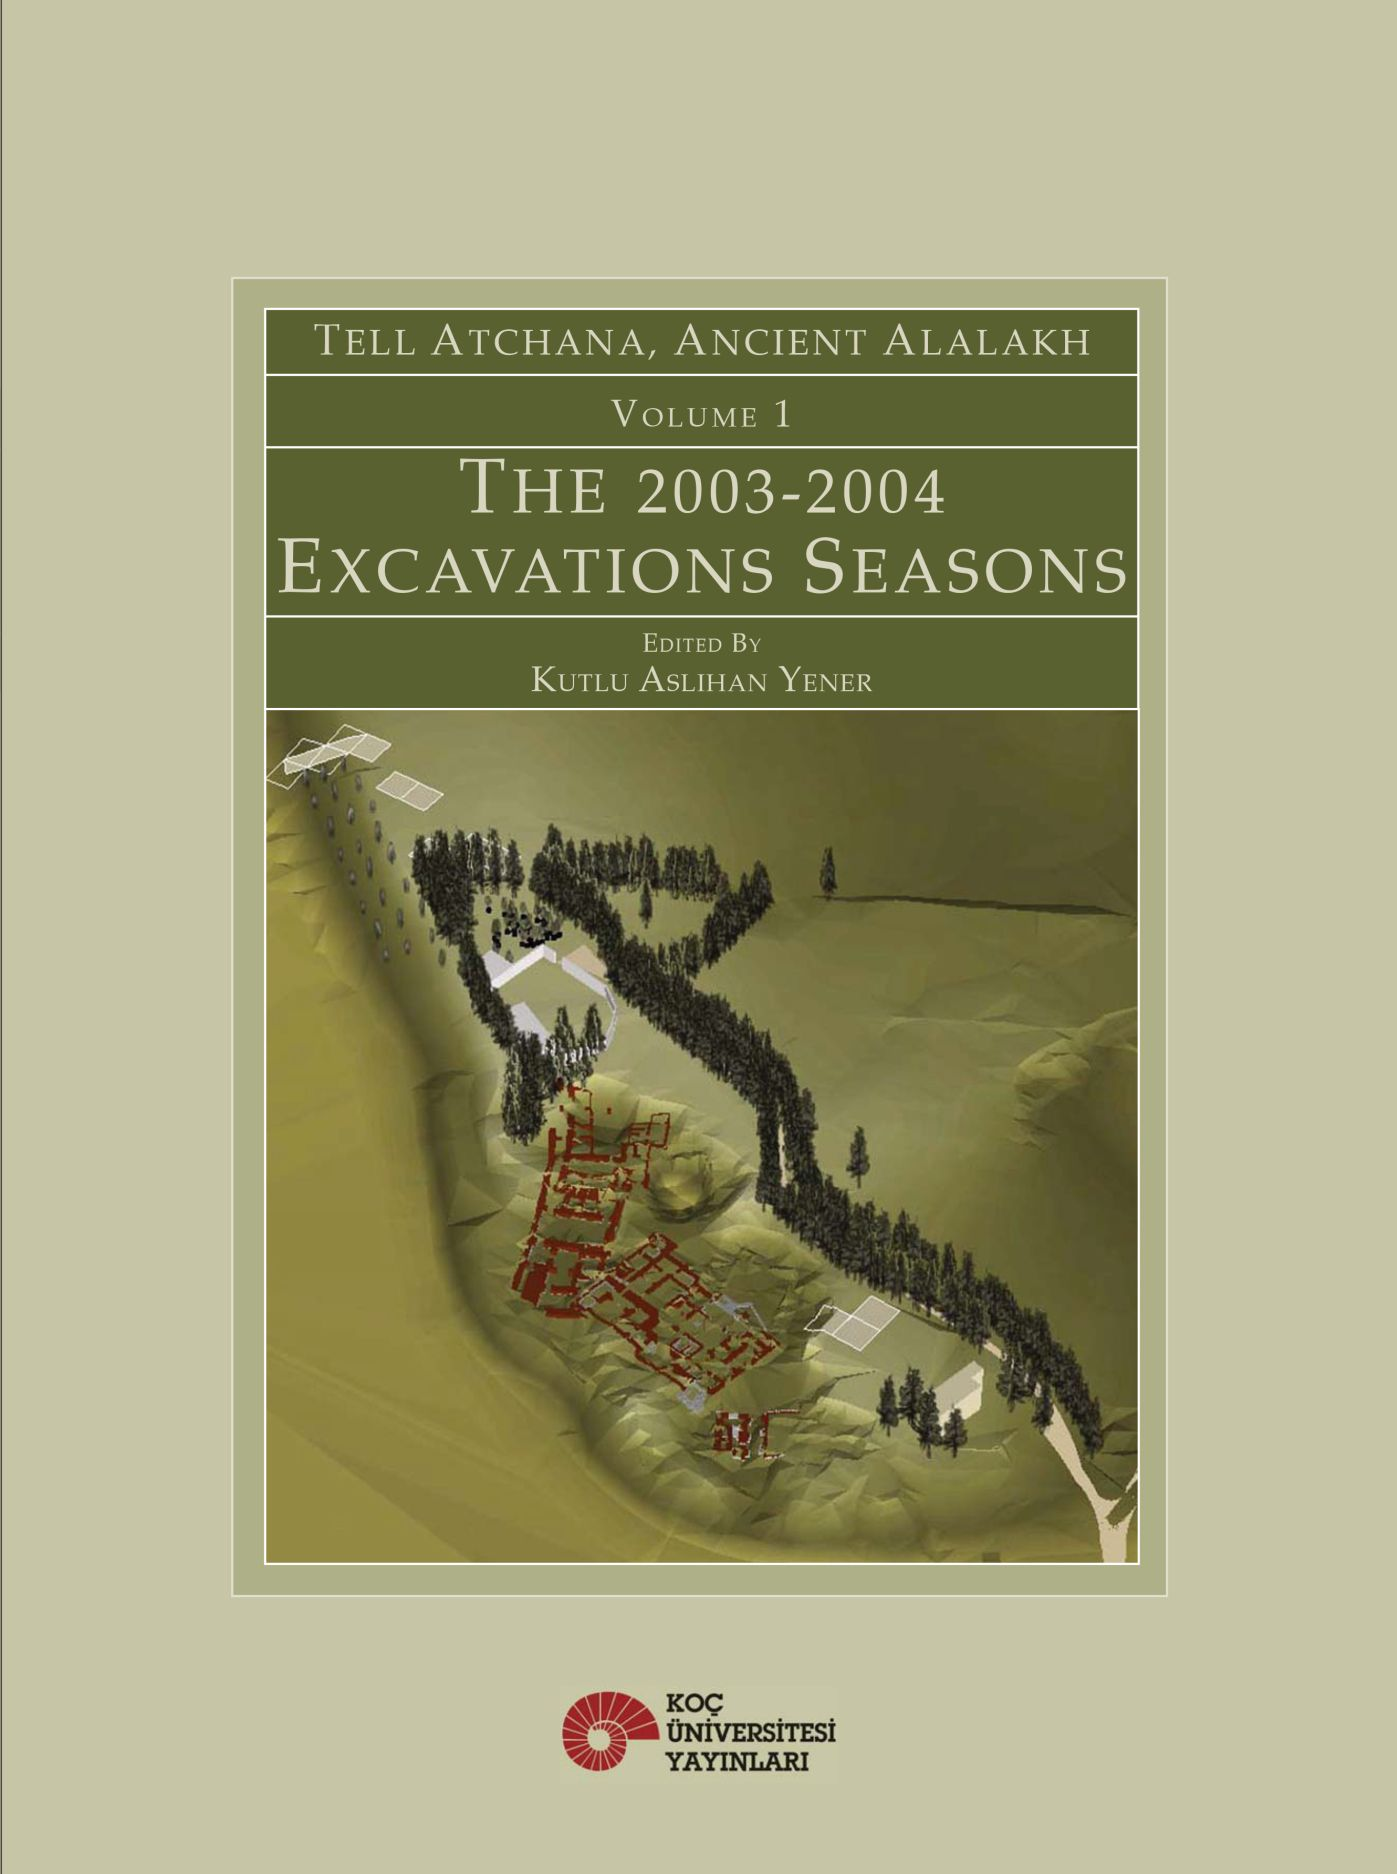 Tell Atchana, Ancient Alalakh Volume 1